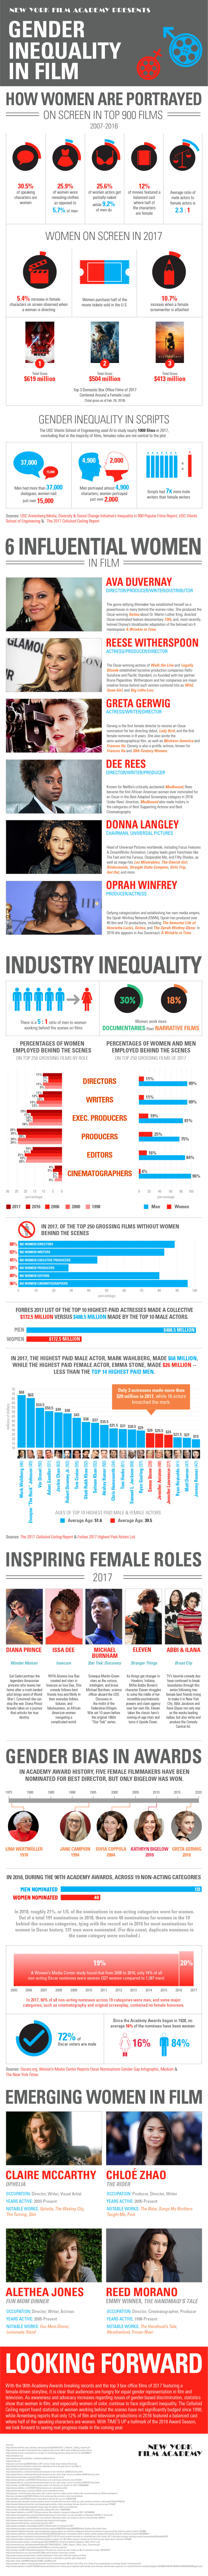 Gender Inequality in Film infographic by the New York Film Academy.